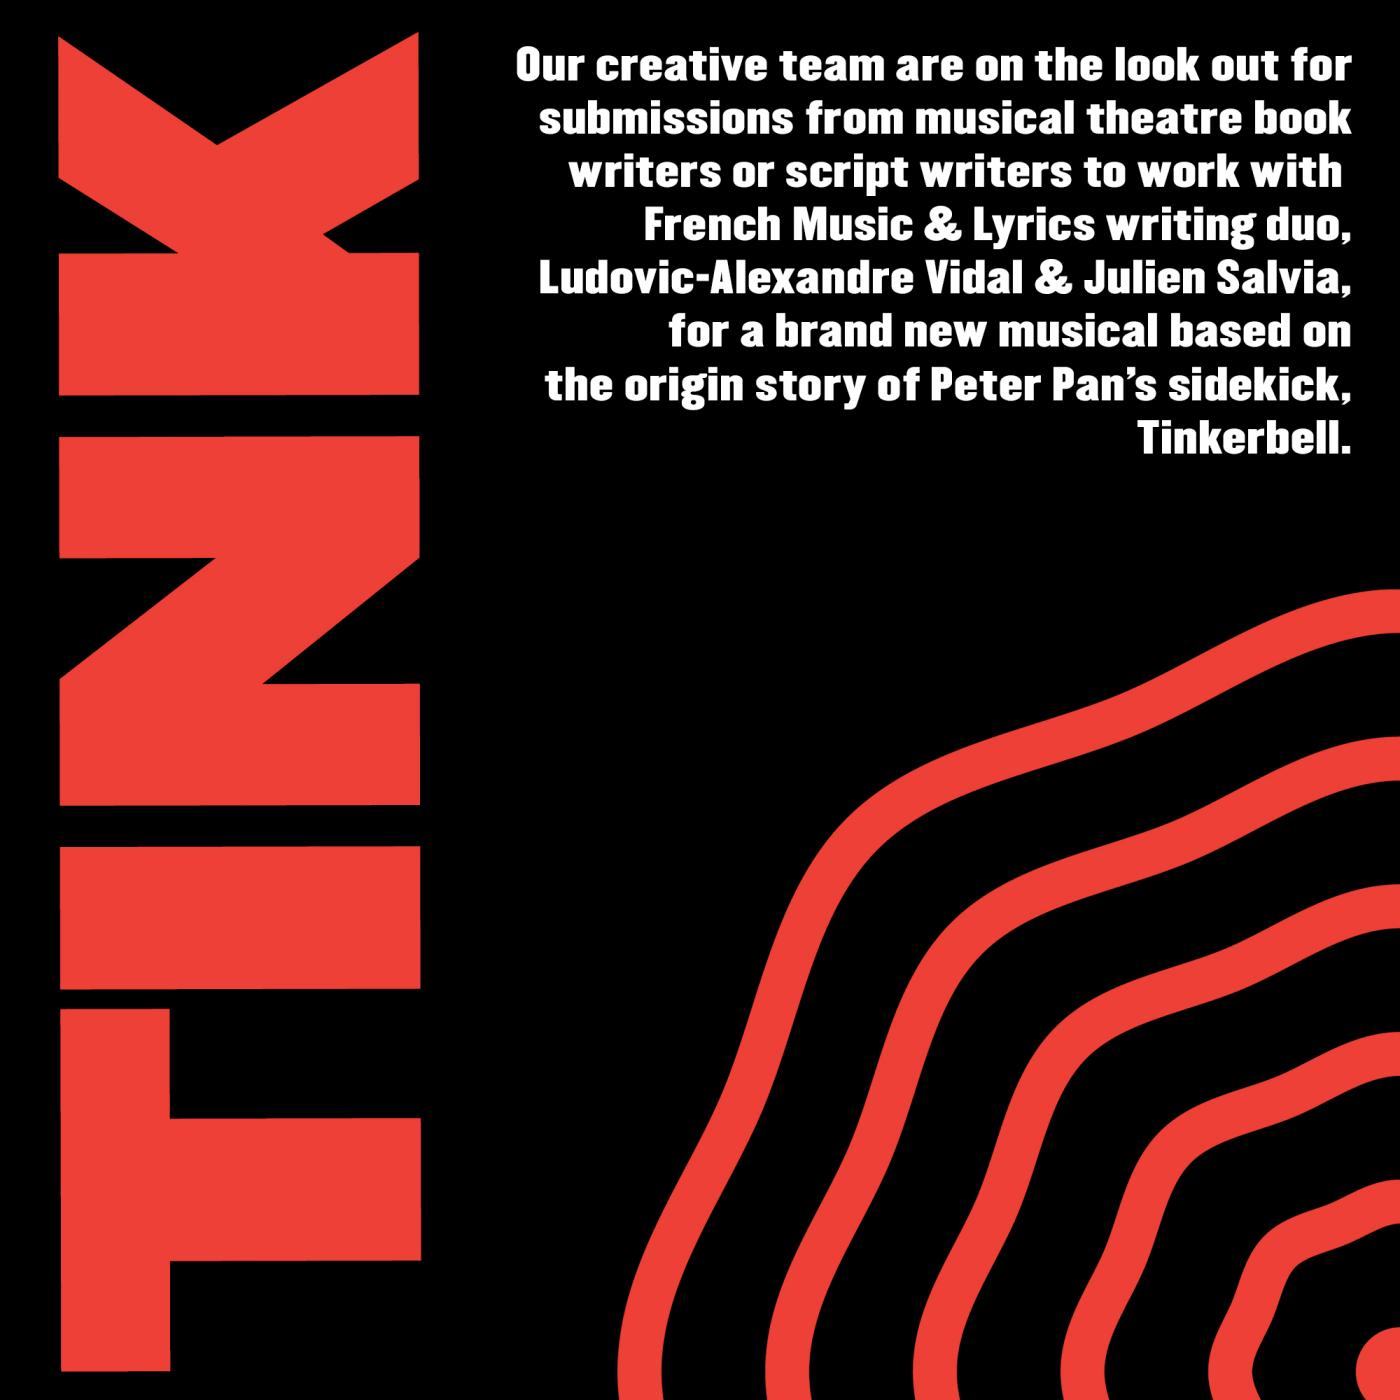 ANNOUNCEMENT: Preston Live Arts Festival search for local writer to join creative team for new musical 'Tink'